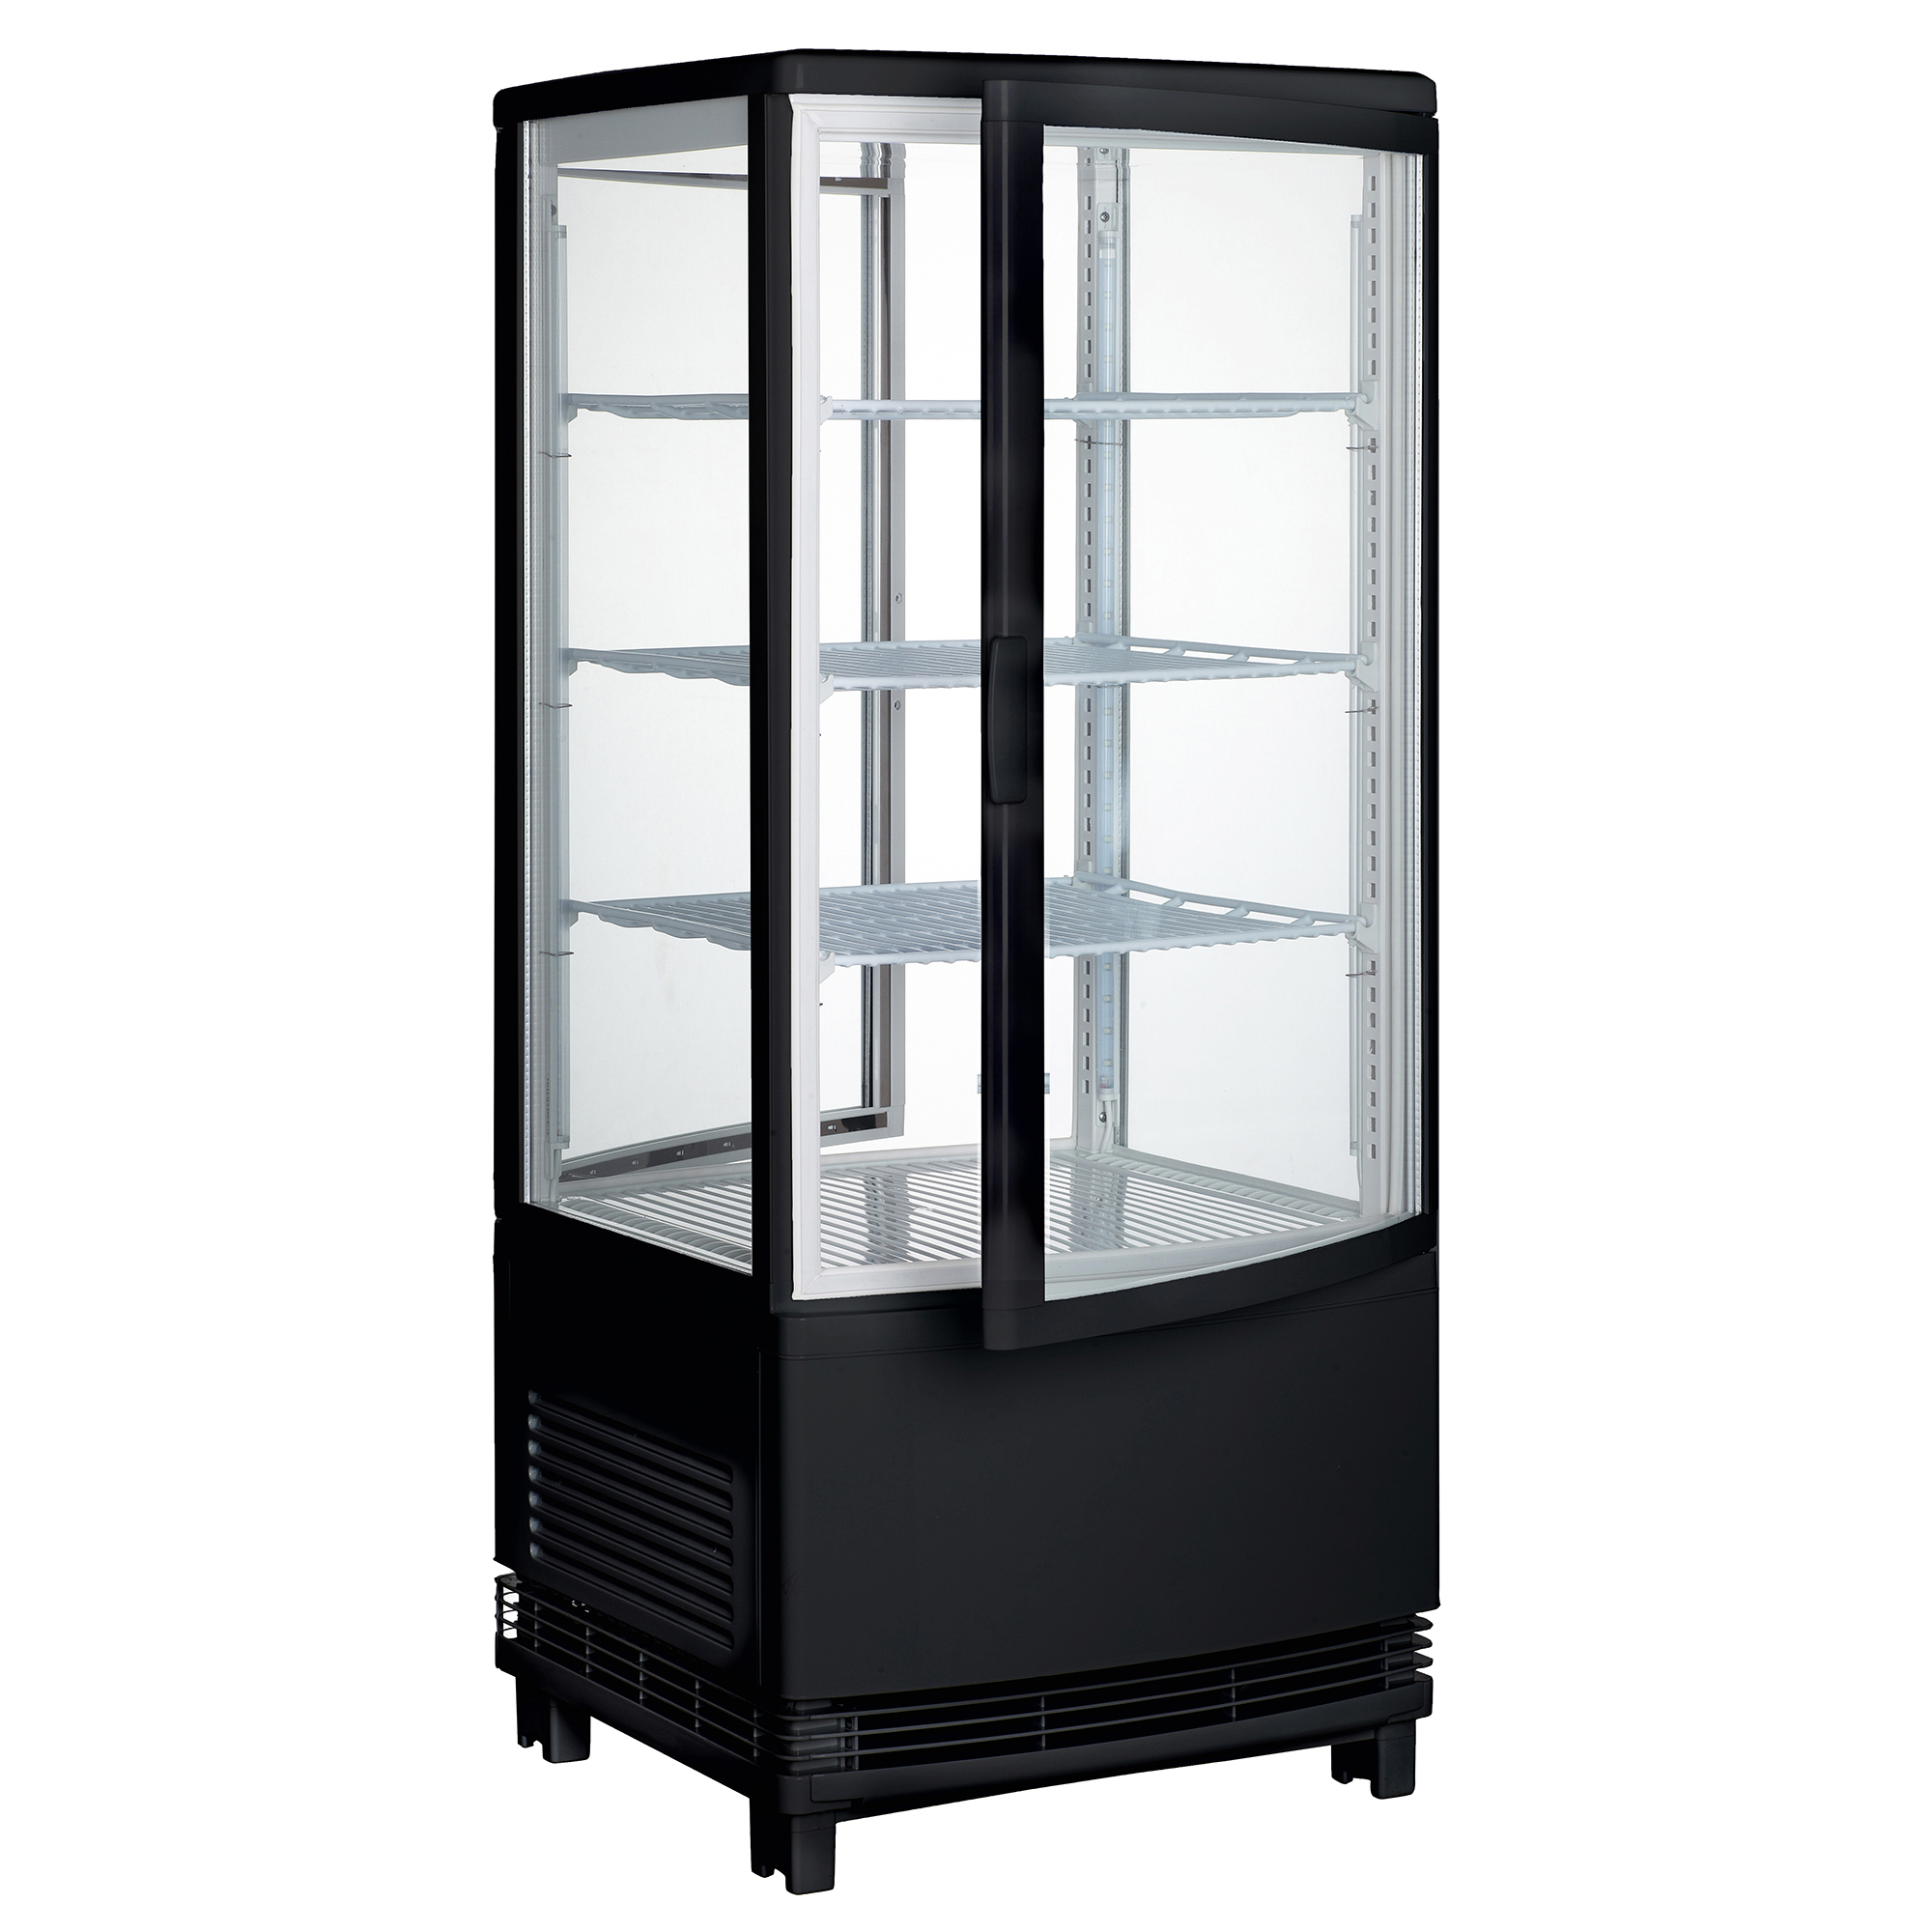 Winco CRD-1K display case, refrigerated, countertop